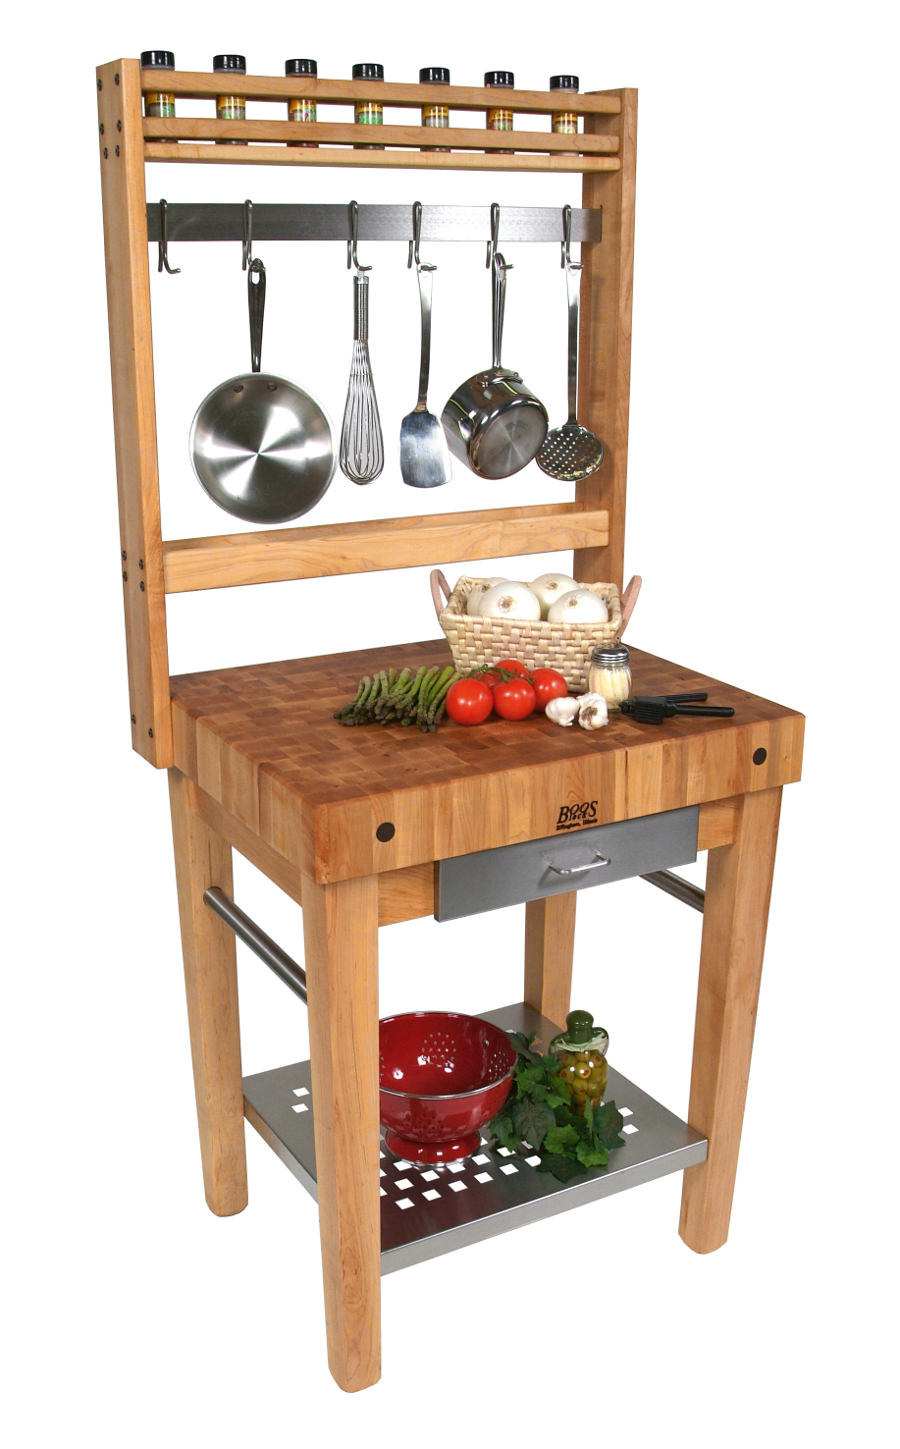 John Boos Cucina Premo Kitchen Prep Station with Pot Rack